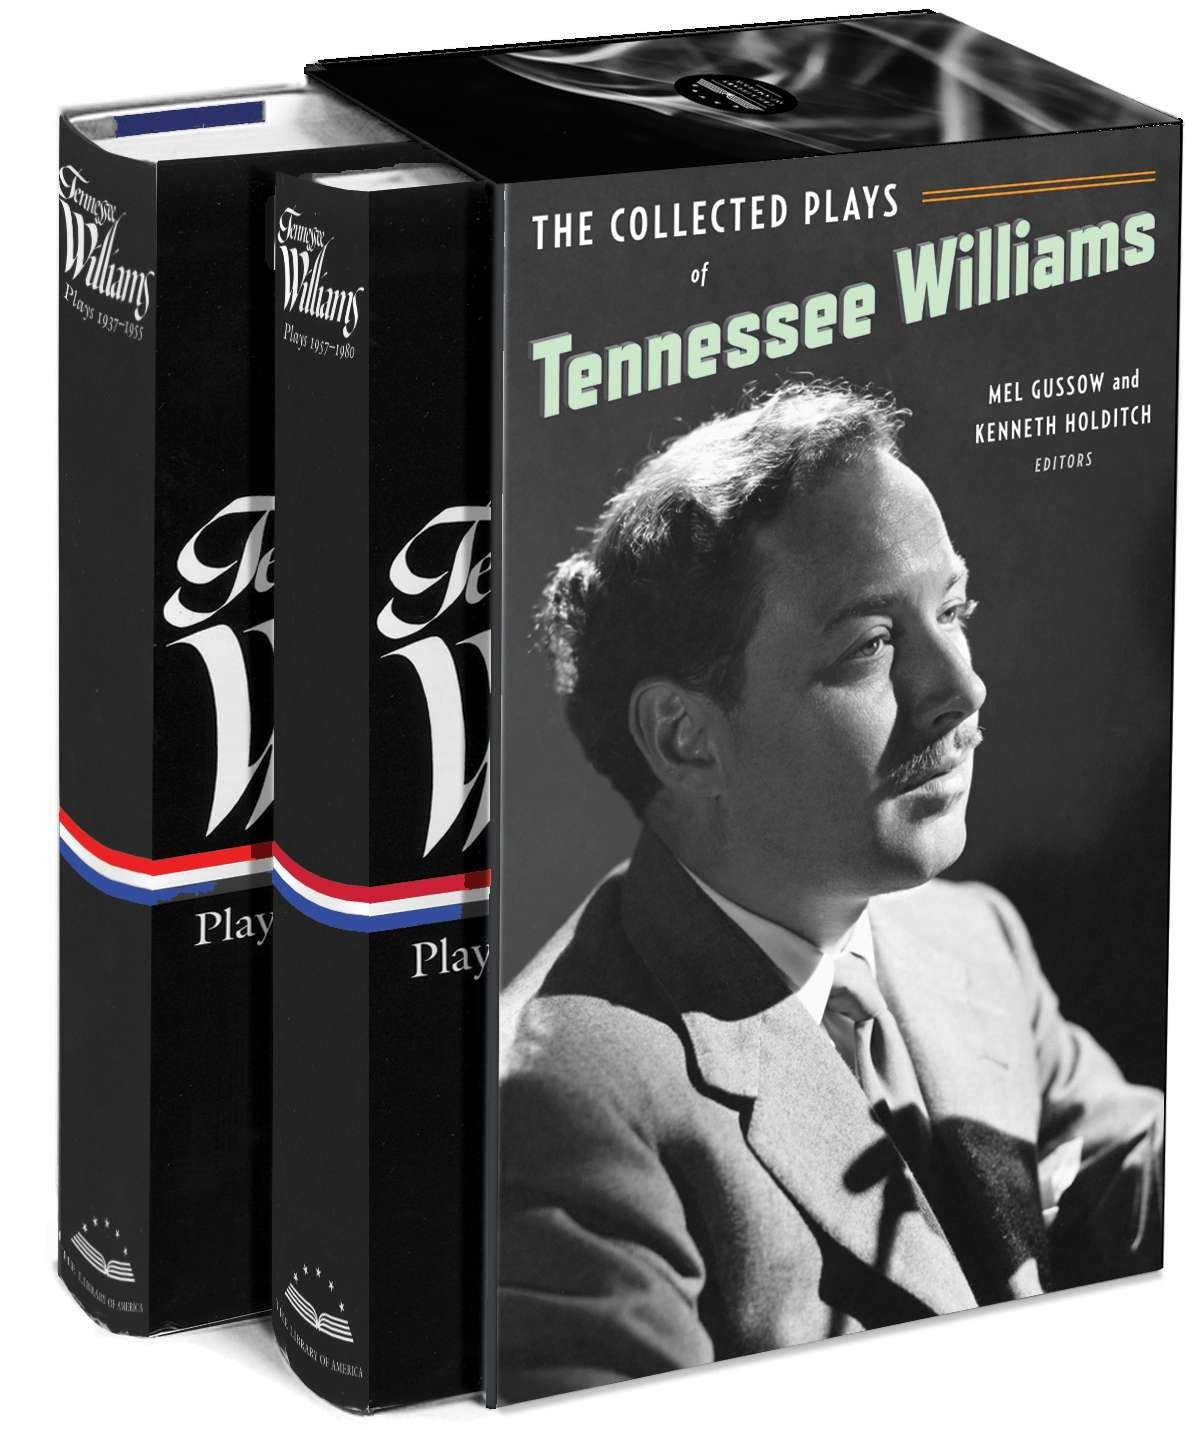 The Collected Plays of Tennessee Williams: A Library of America Boxed Set (The Library of America) pdf epub